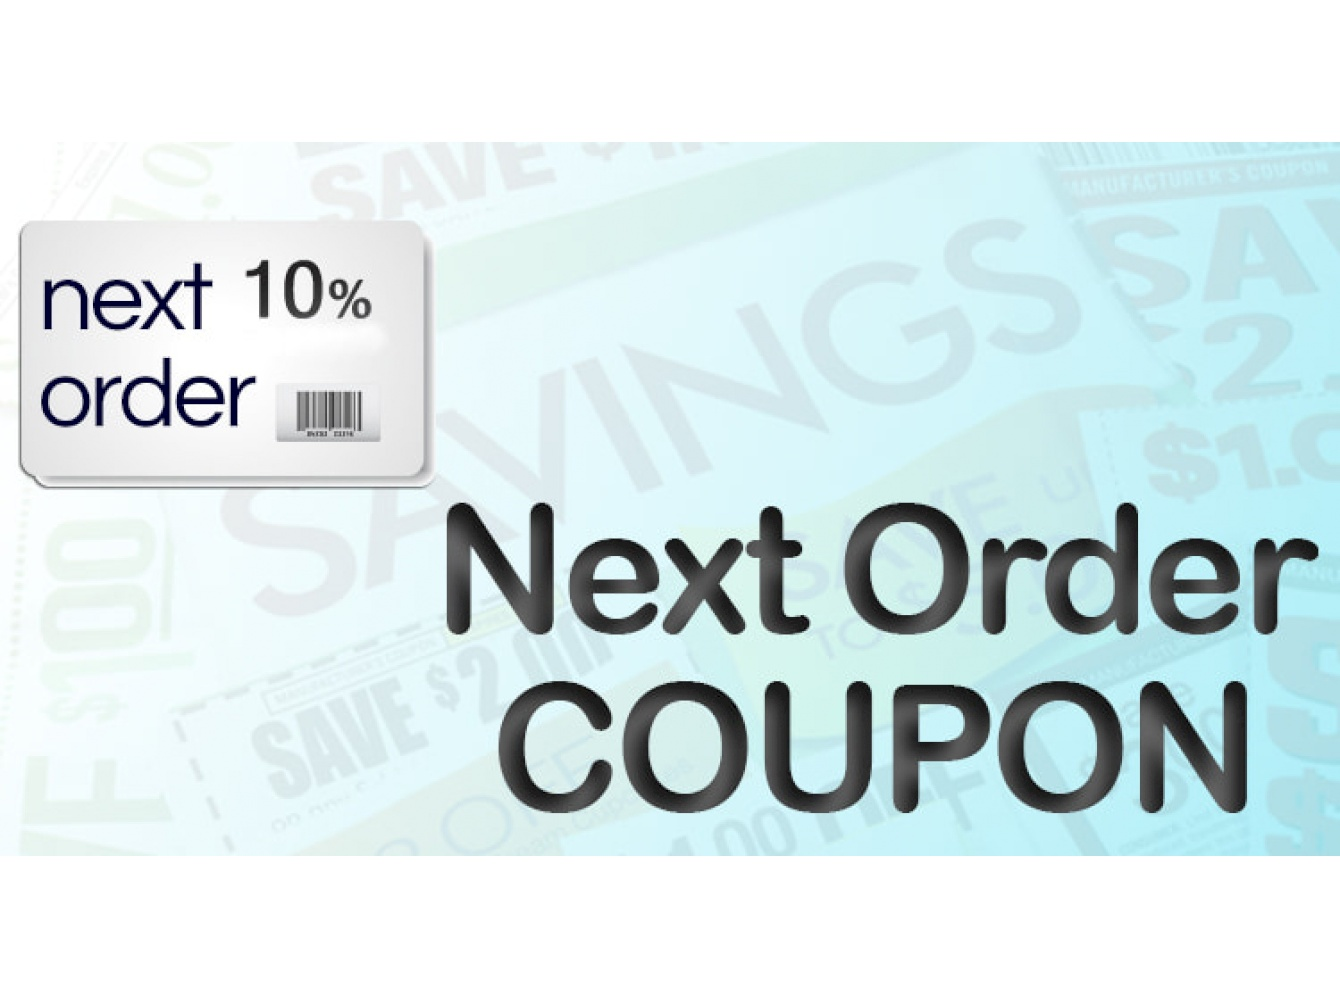 Next order Loyalty Coupons